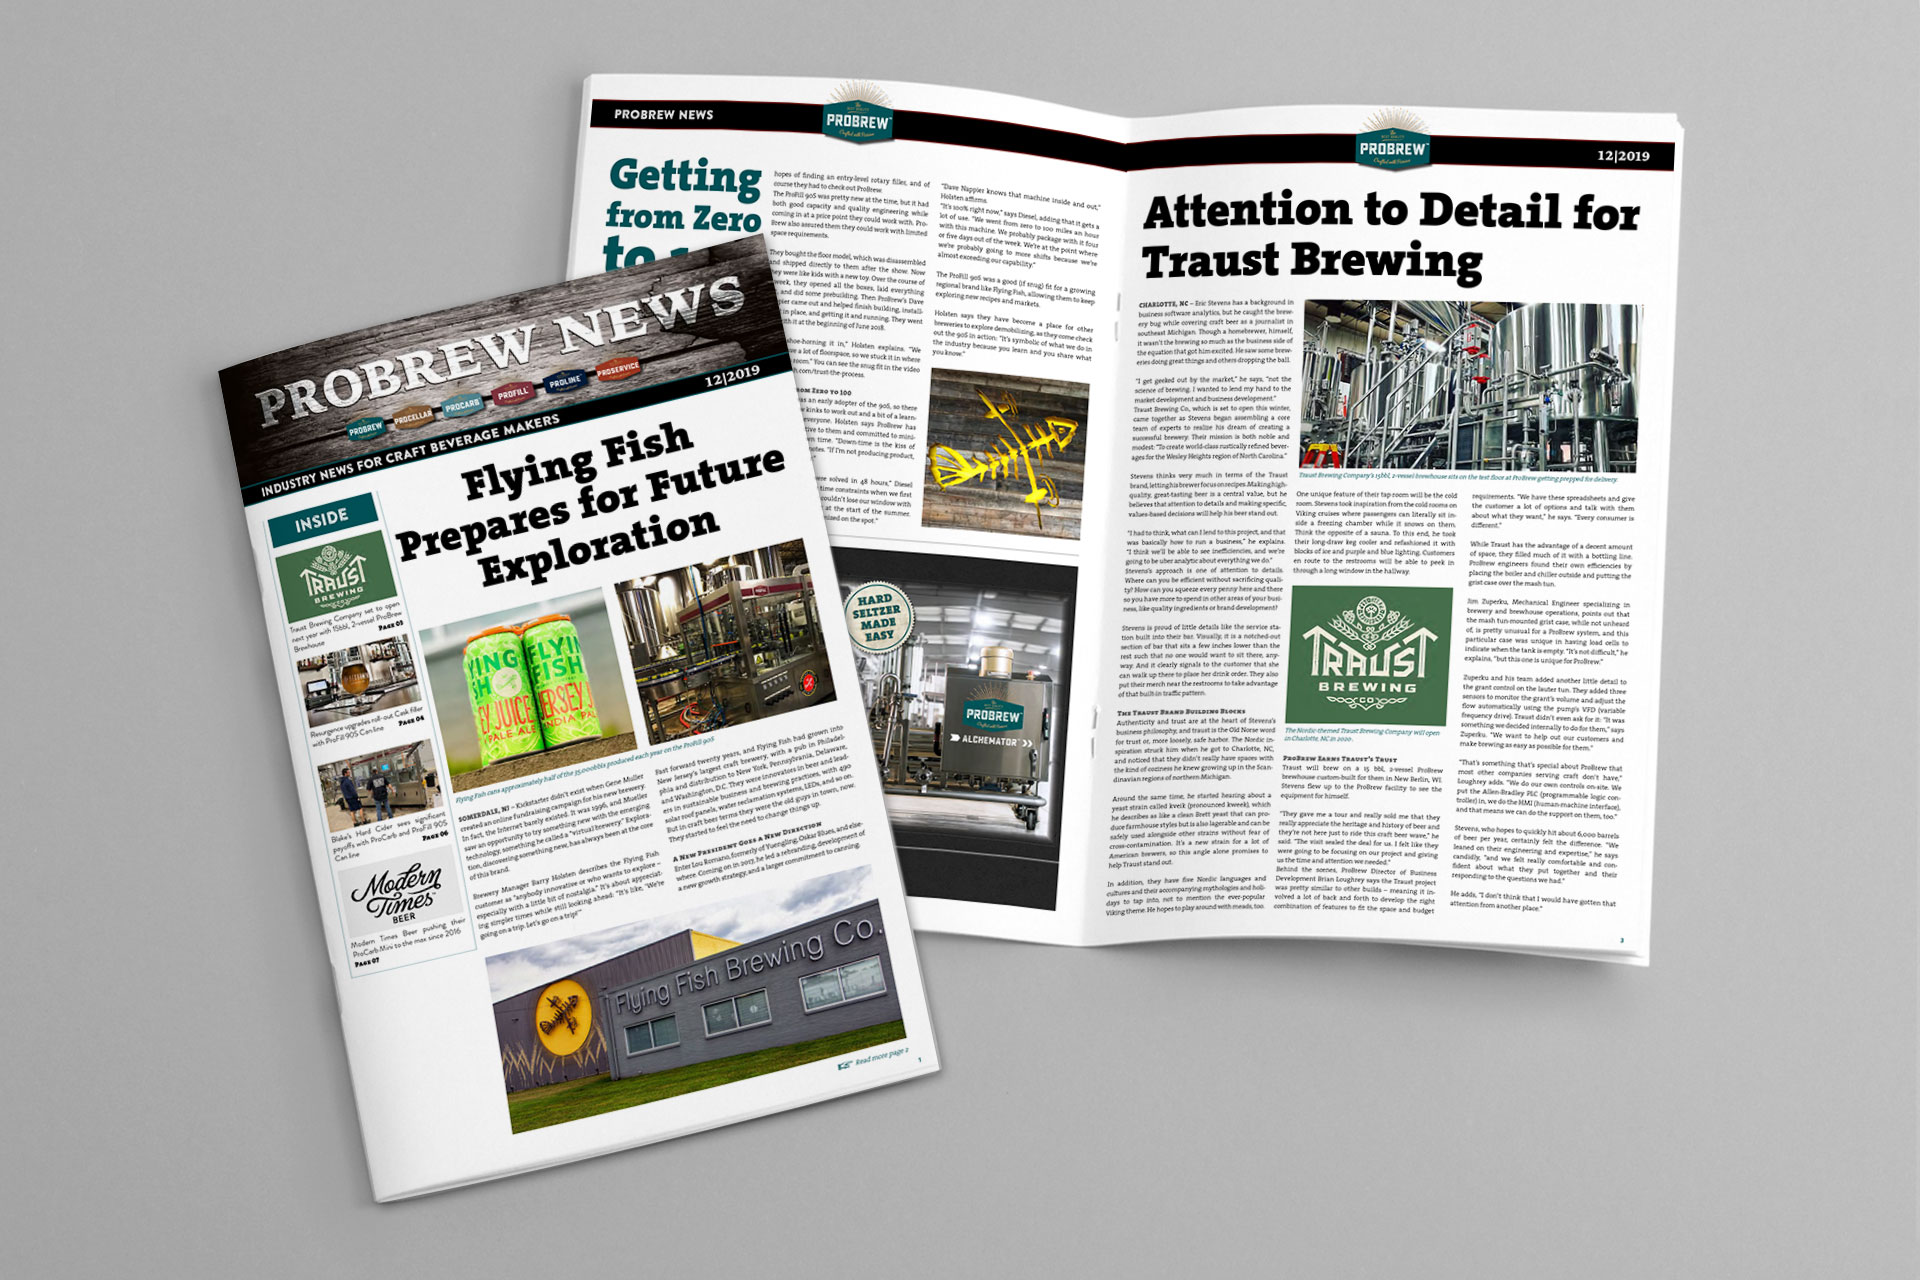 ProBrew News Corporate Publishing